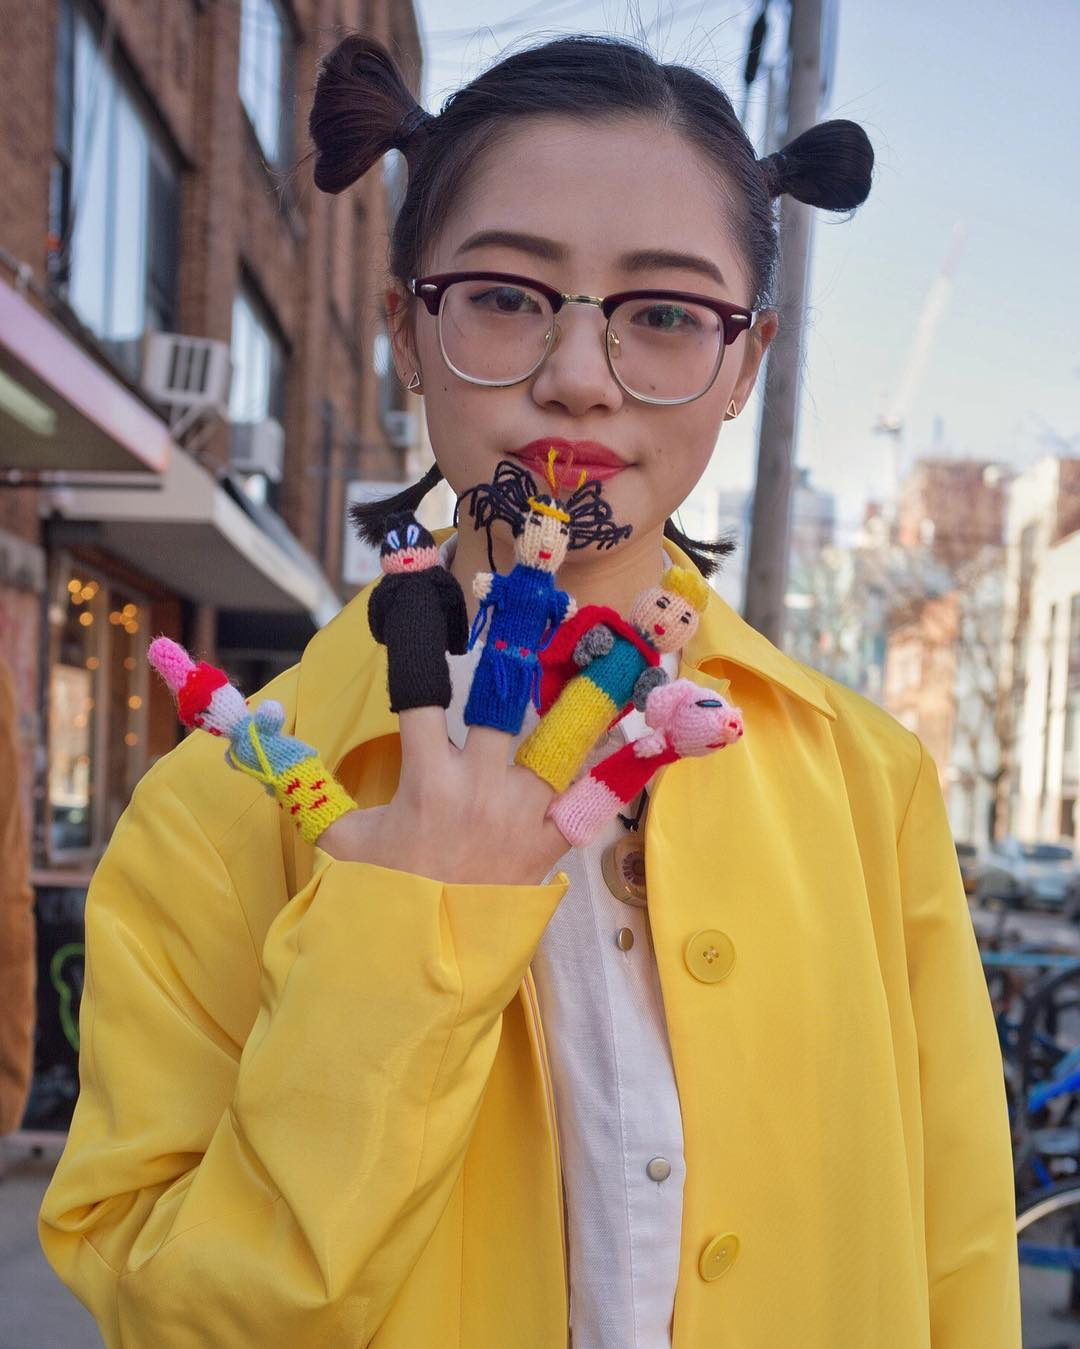 I was hanging with some photographer friends in Williamsburg and saw Jaluli and her beautiful yellow coat! She was also buying finger puppets which if